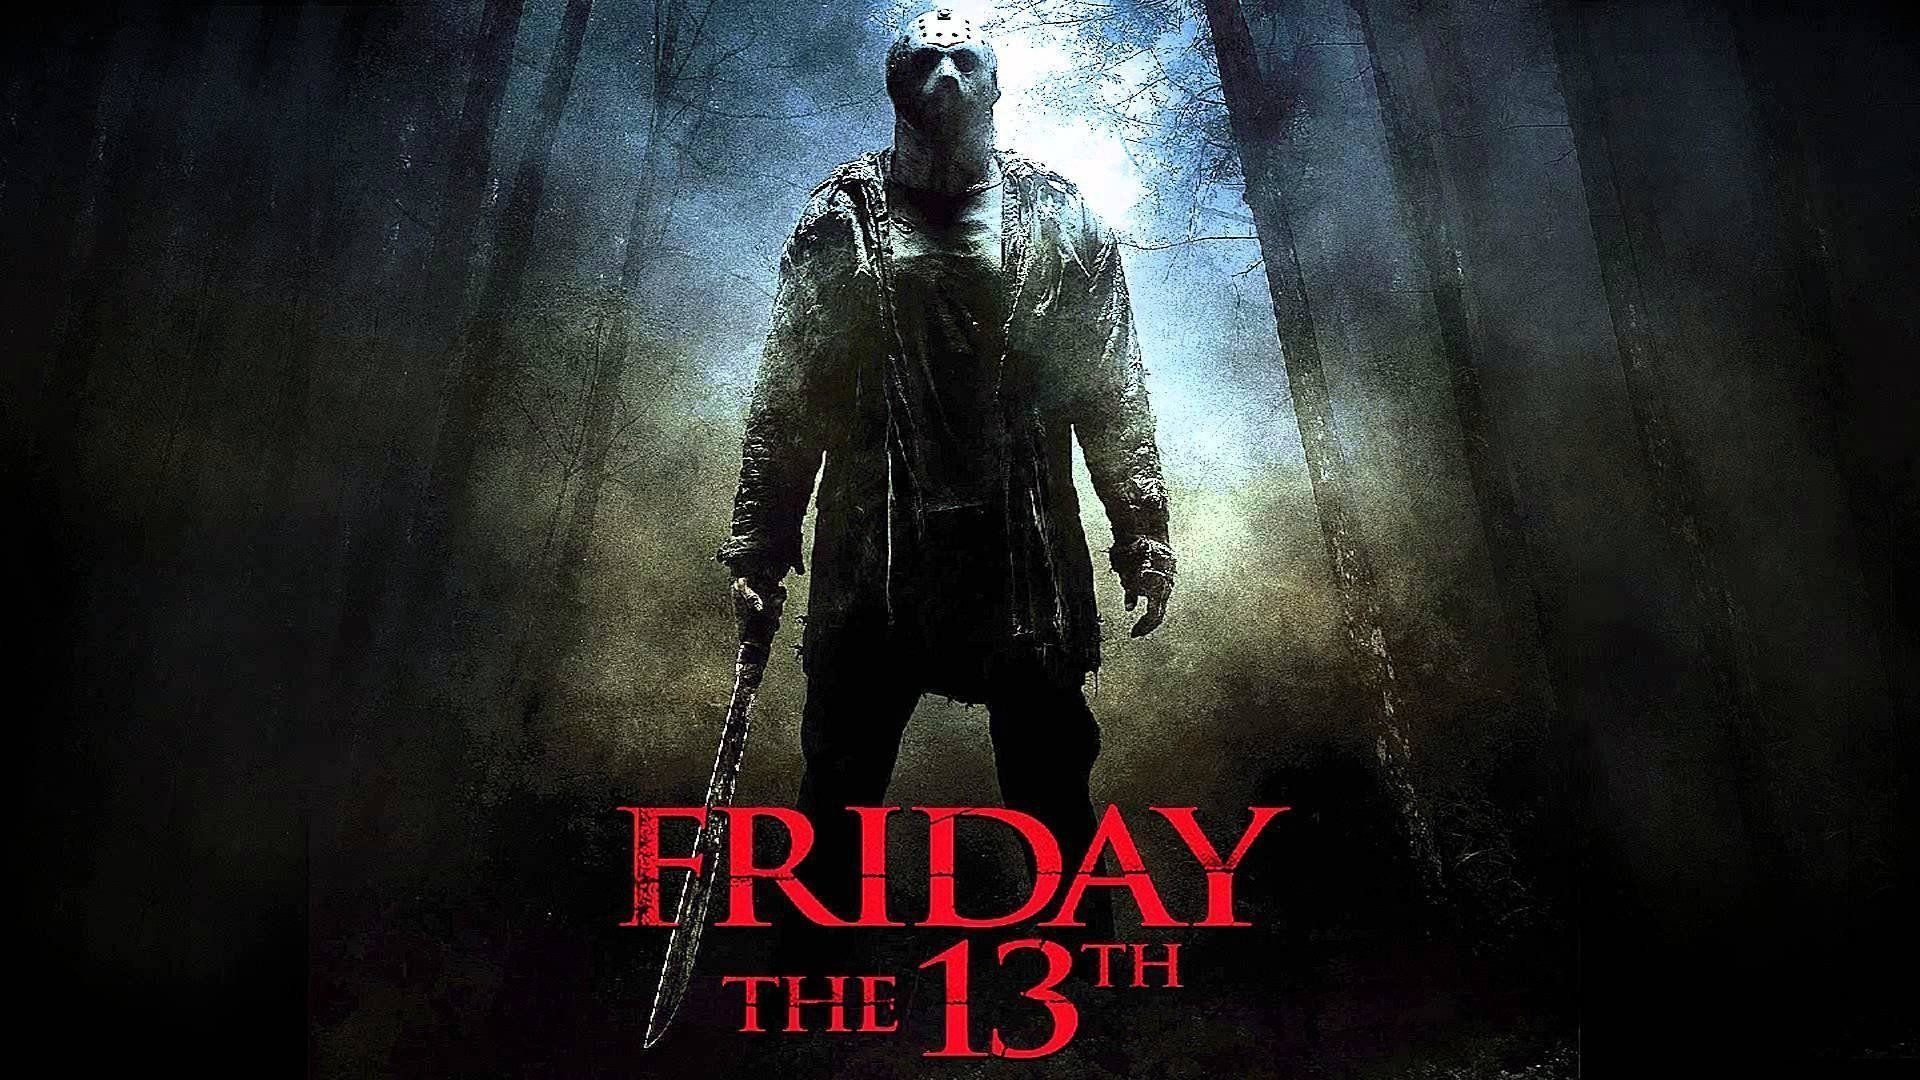 Res: 1920x1080, Friday the 13th Pictures Wallpaper - WallpaperSafari